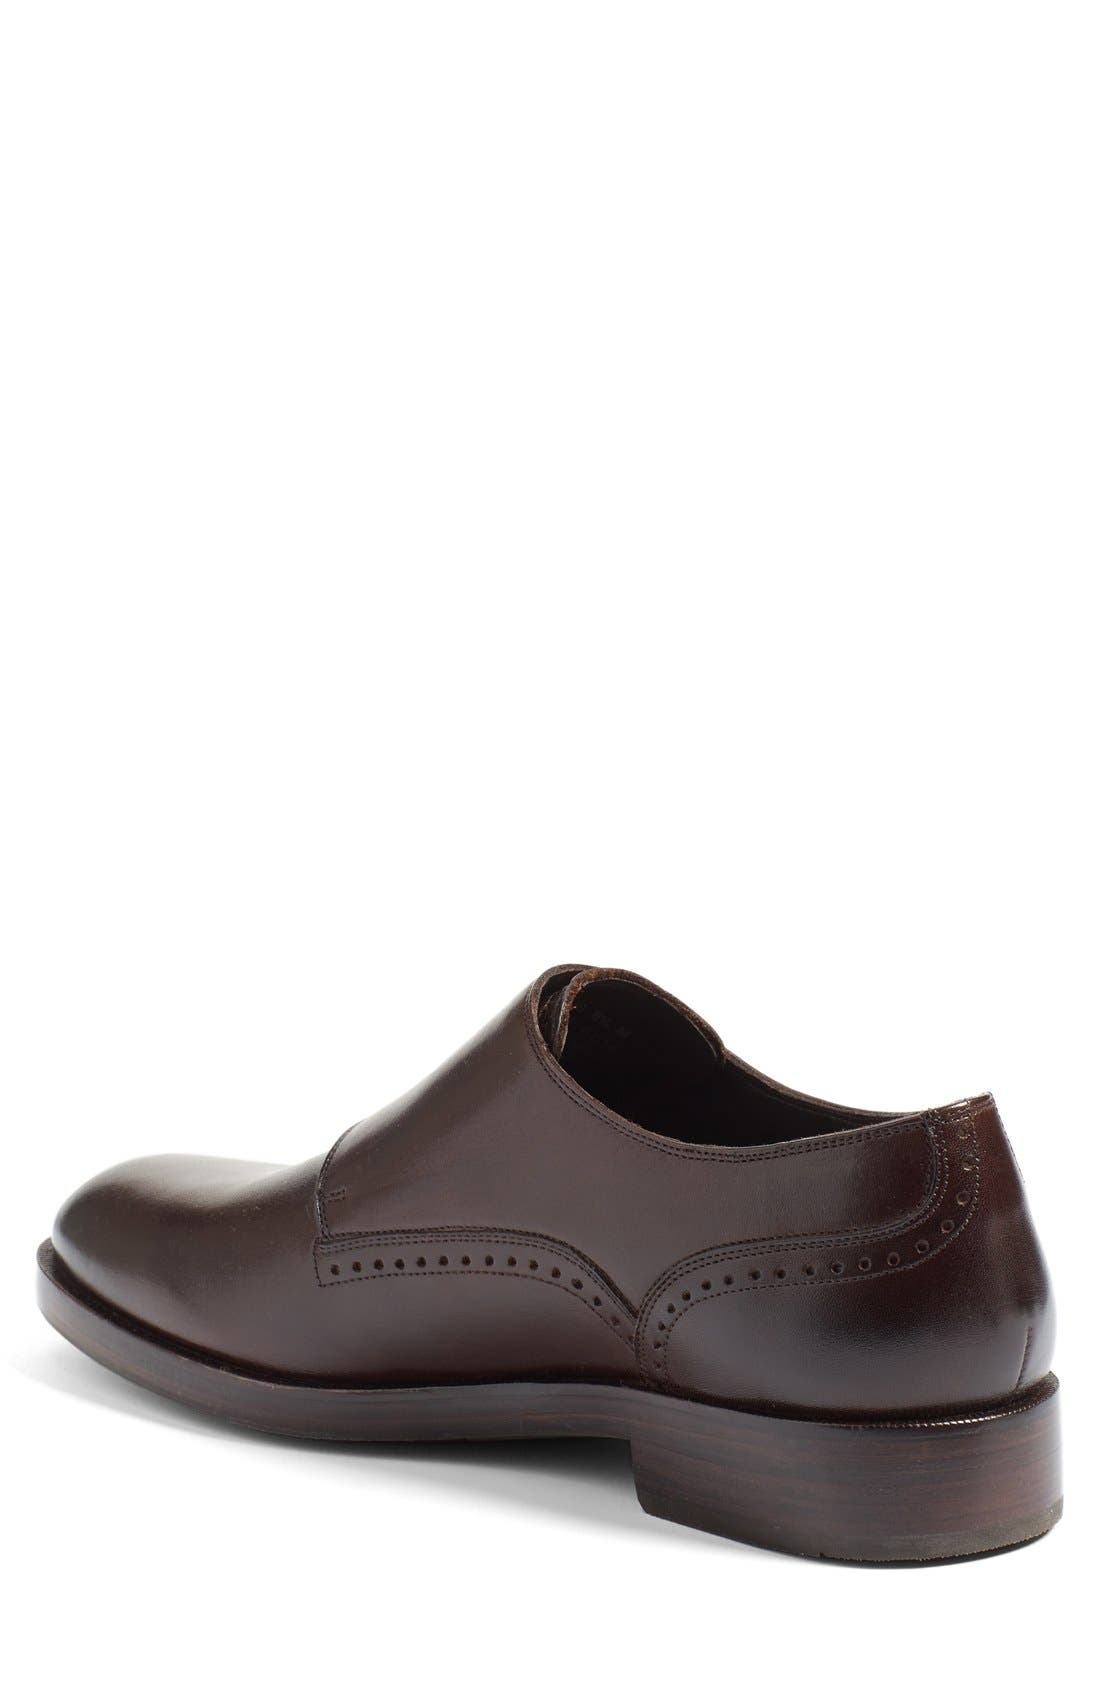 Alternate Image 2  - Cole Haan 'Harrison' Double Monk Strap Shoe (Men)